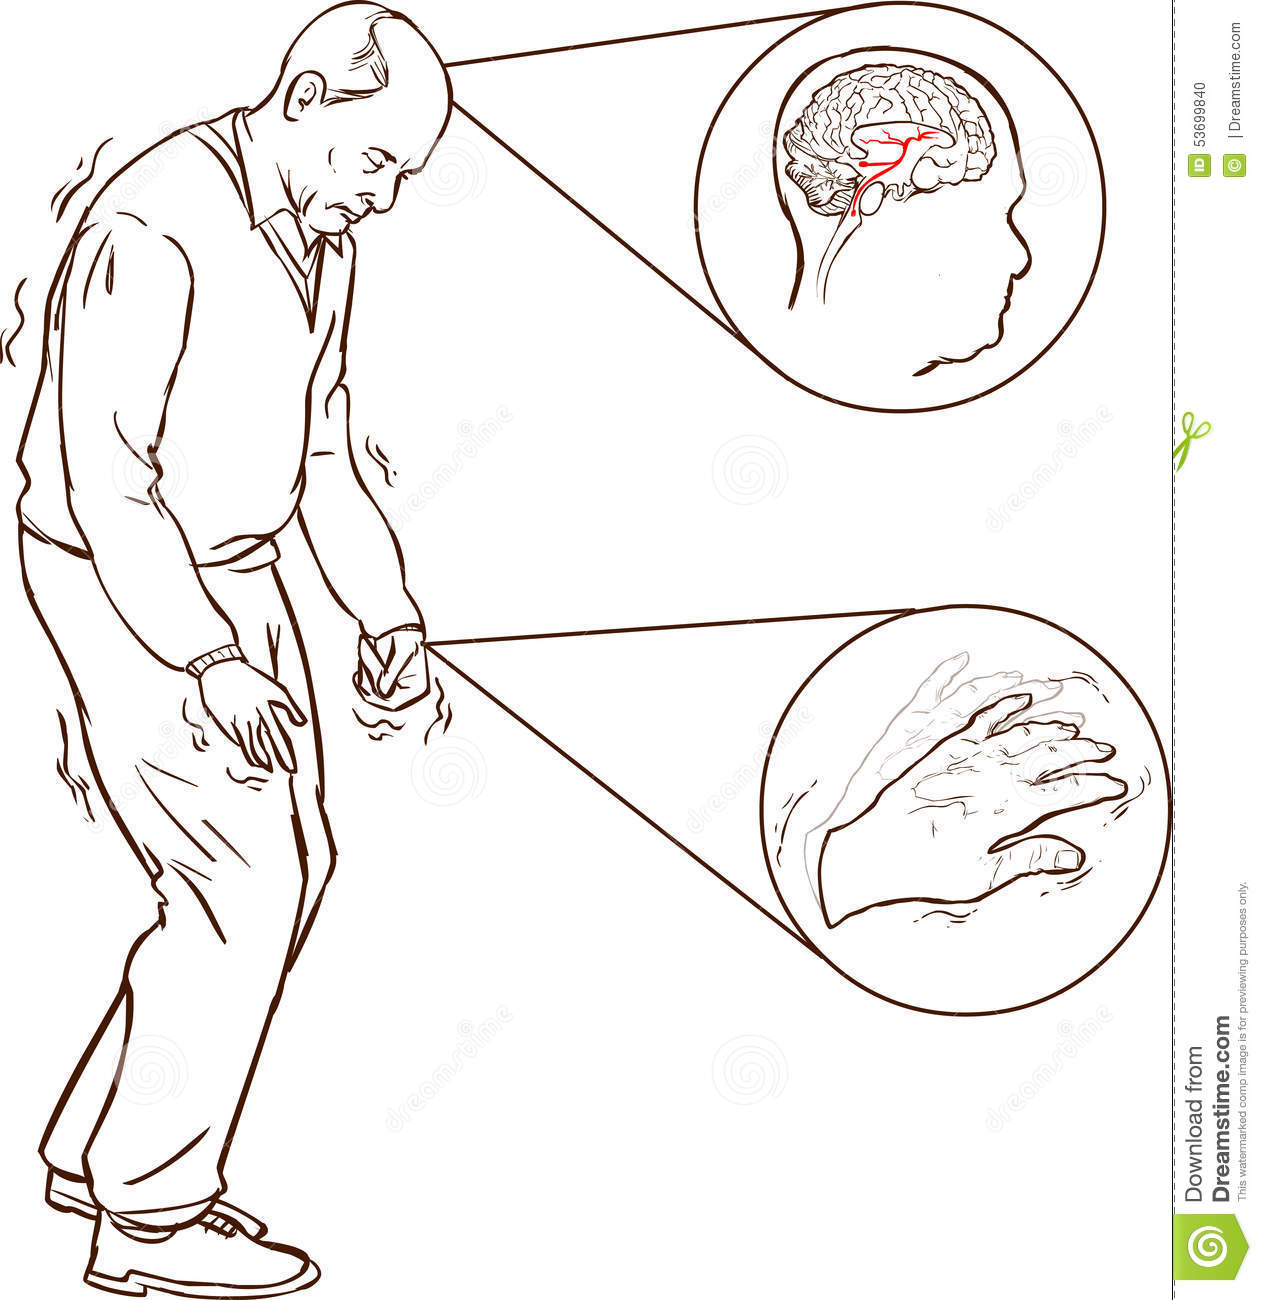 Parkinson: Old Man With Parkinson Symptoms Difficult Walking Stock